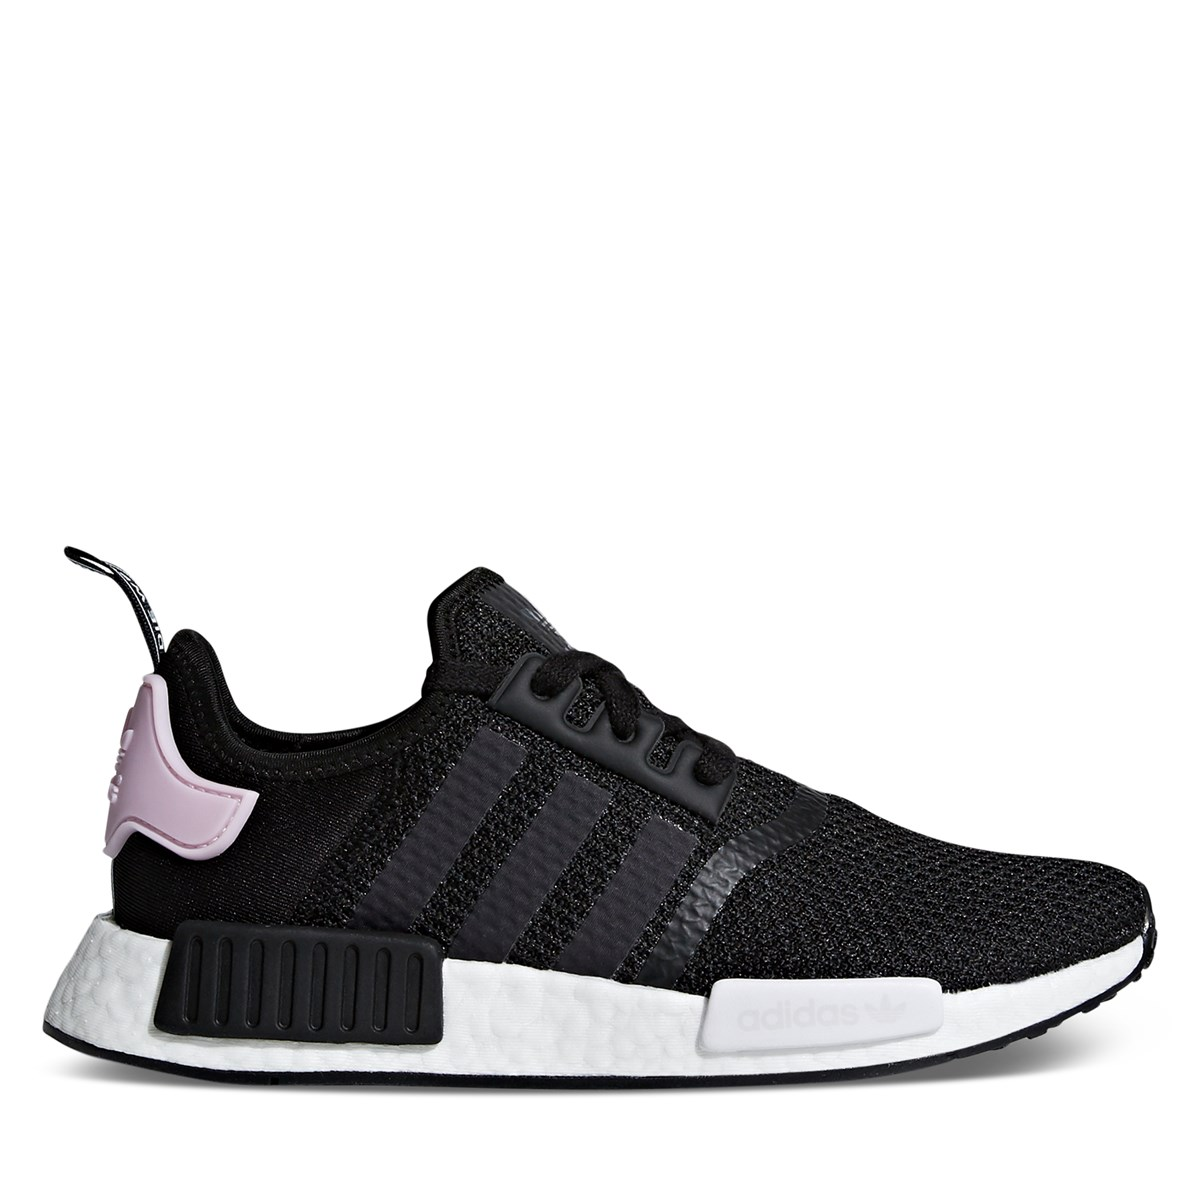 596f53eefbd14 Women s NMD R1 Sneakers in Black. Previous. default view